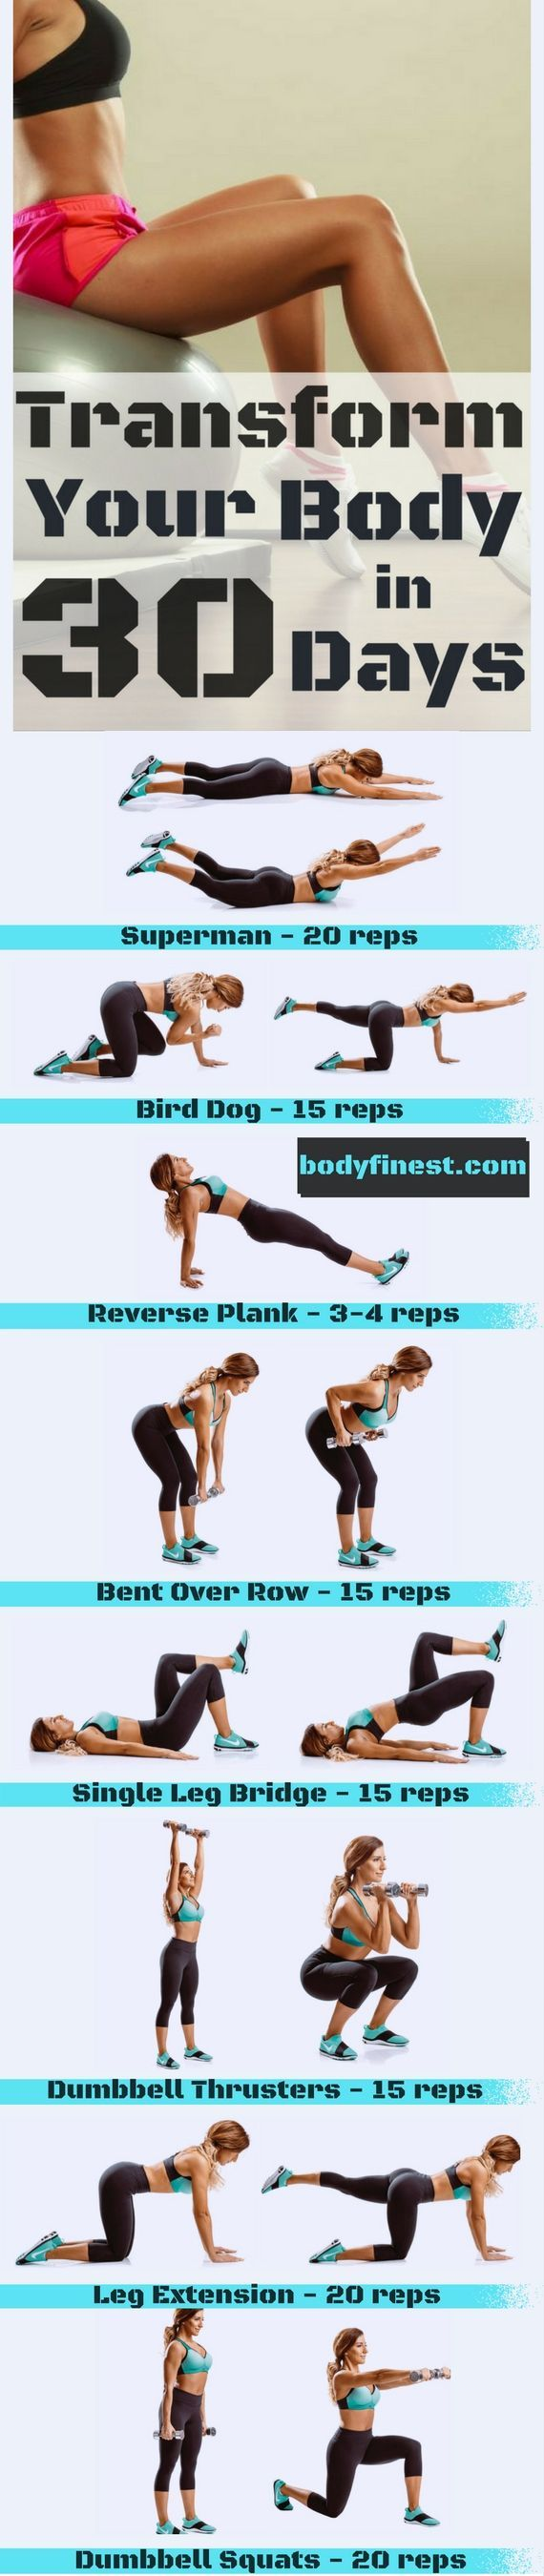 Transform Your Body In 30 Days With 8 Simple Exercises